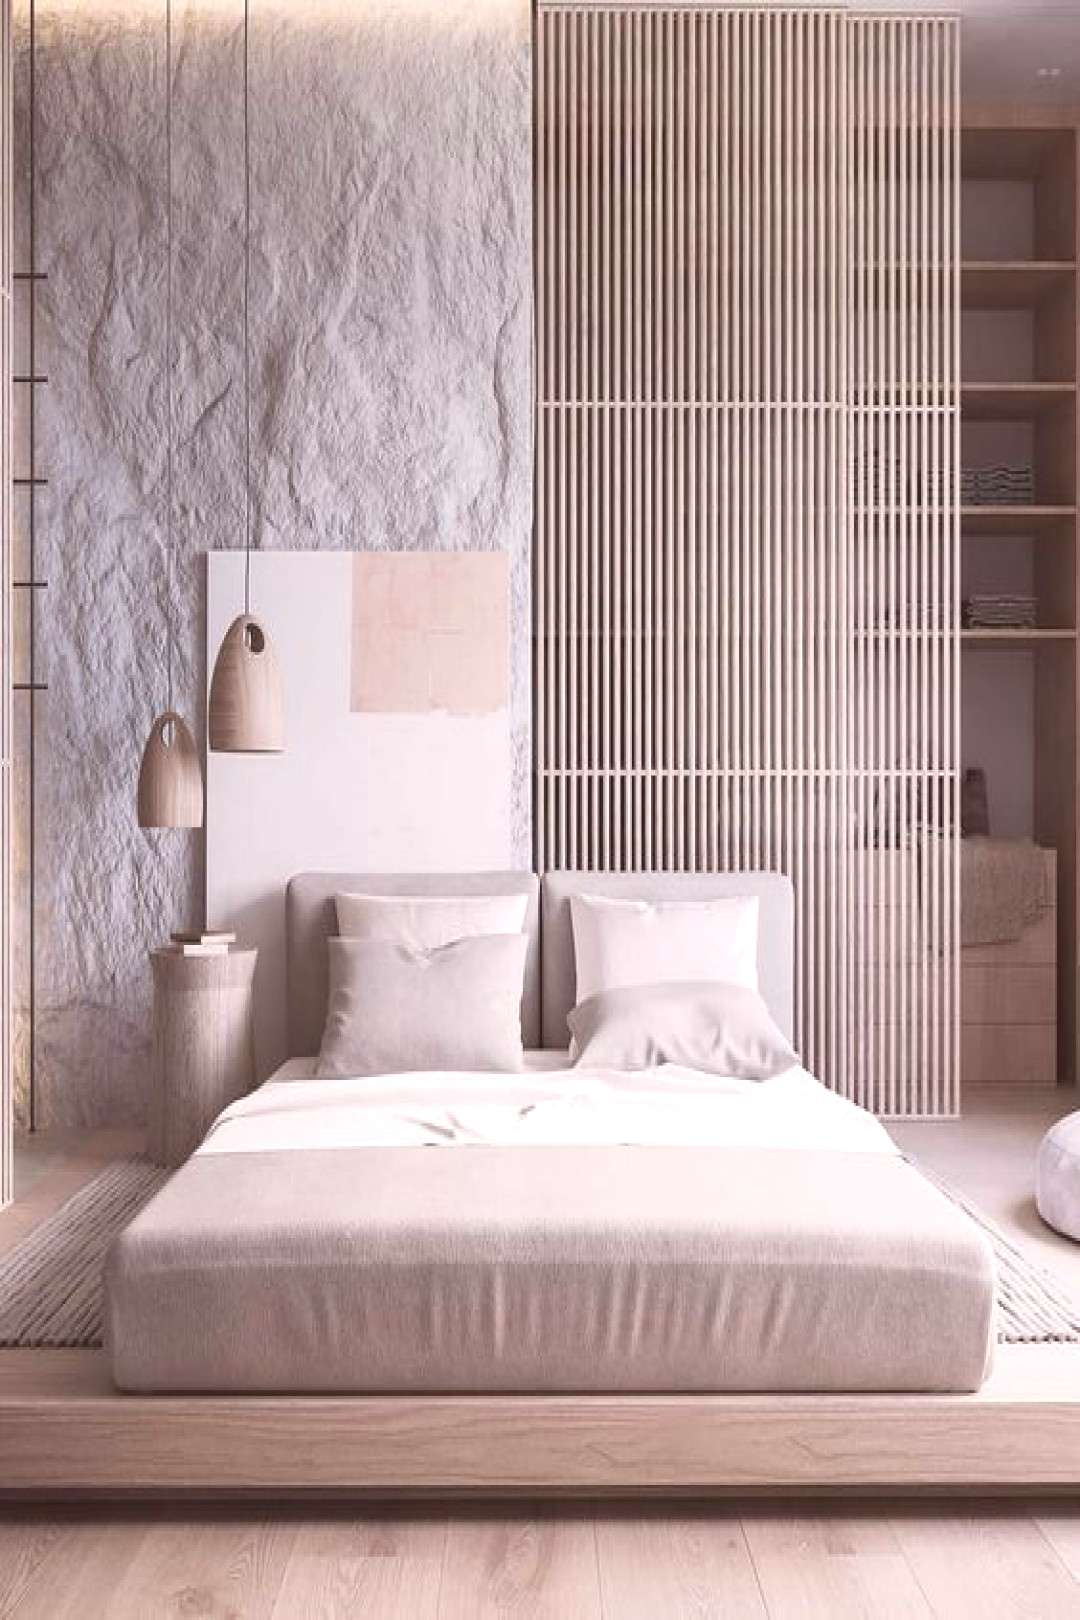 Nightstands, side tables, cabinets or chairs are some of the luxury bedroom furn...#bedroom